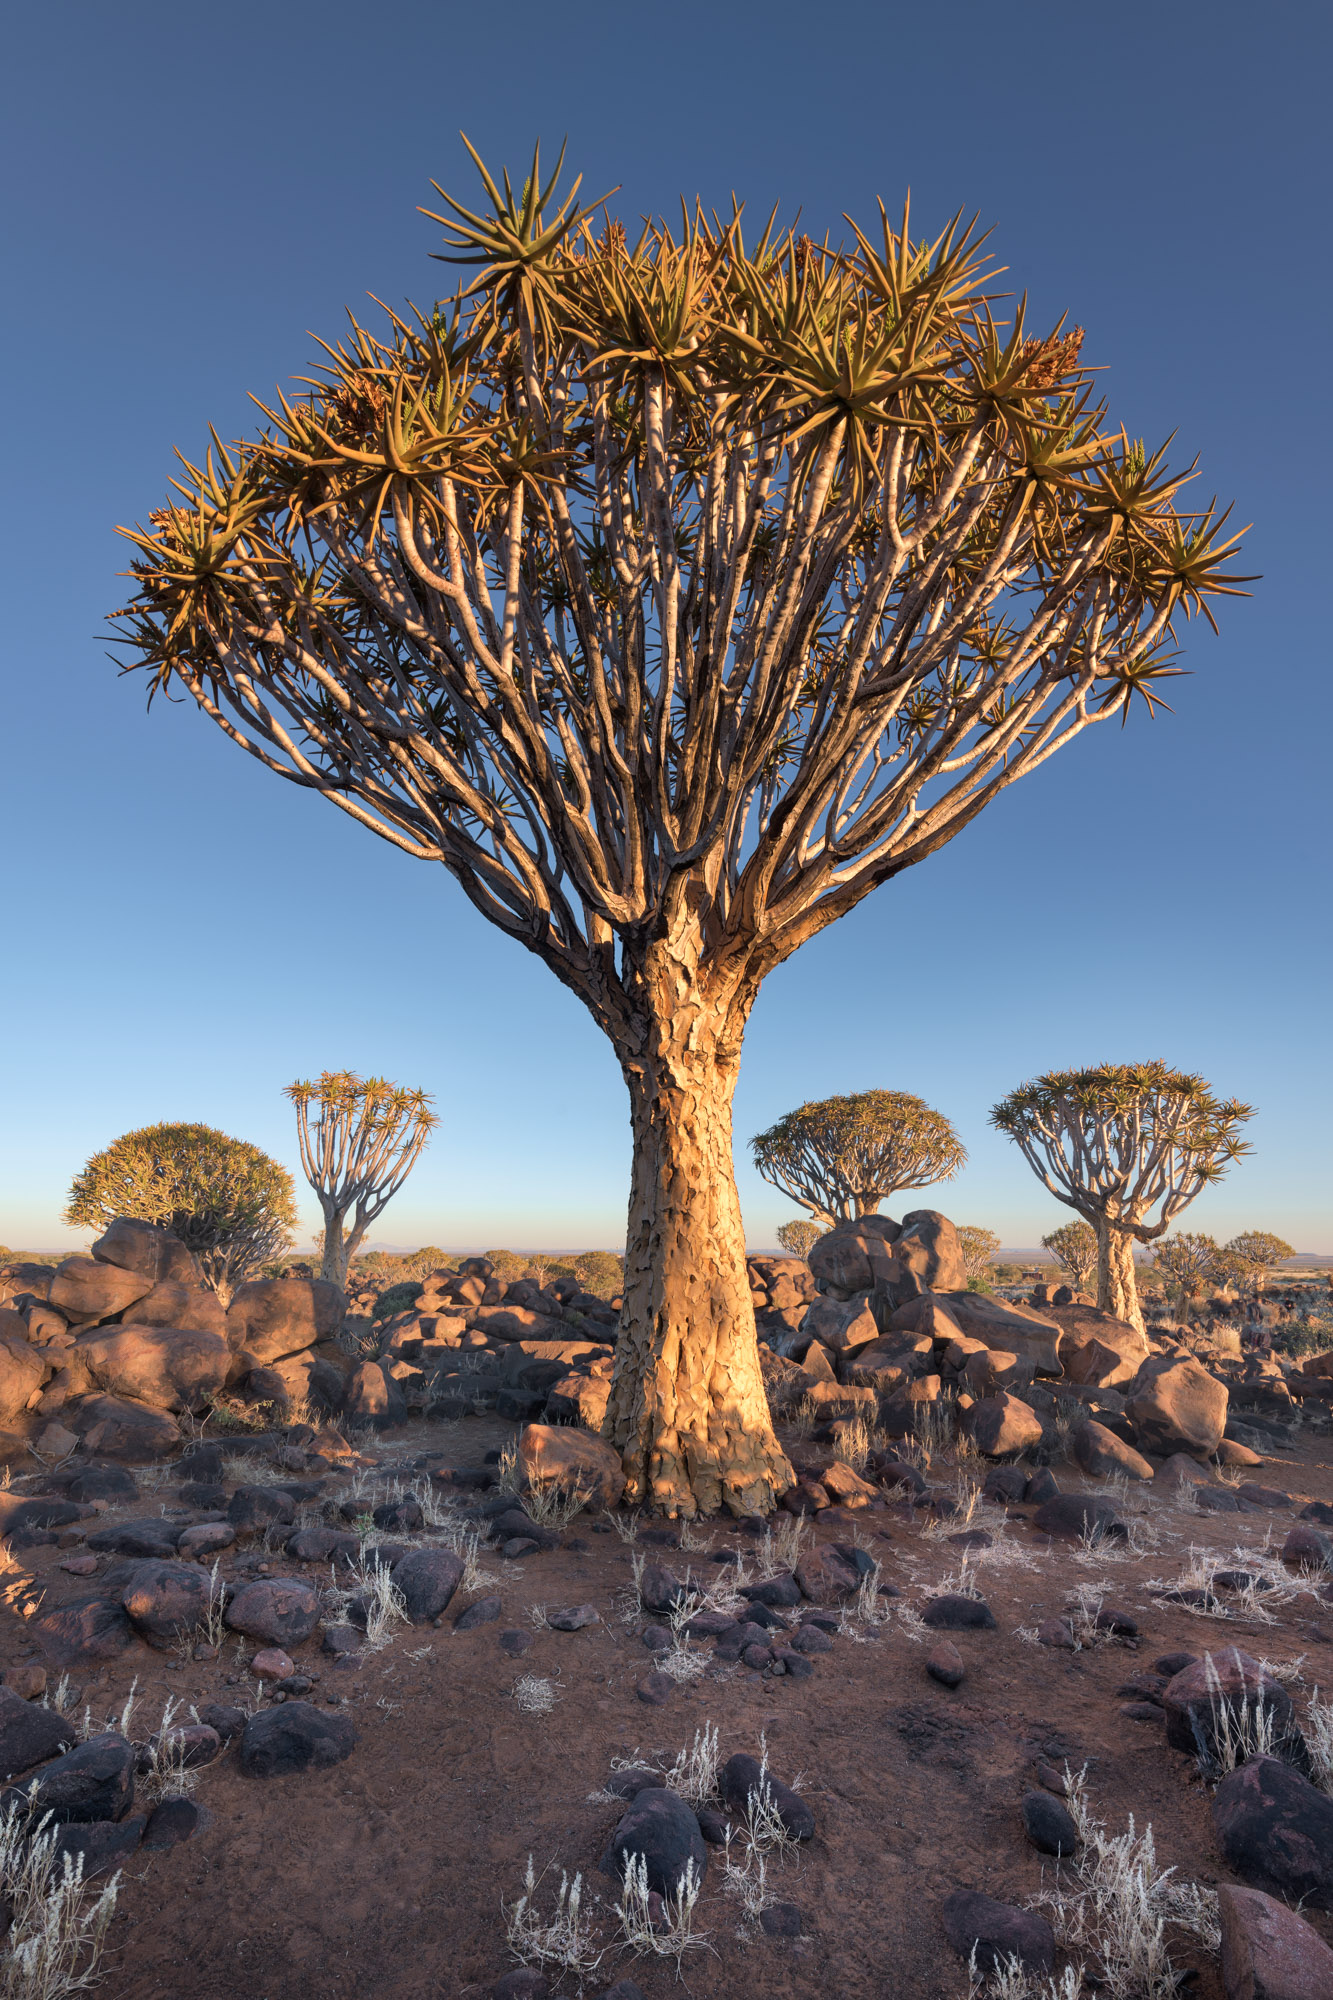 Quiver Trees in the Evening, Keetmanshoop, Namibia